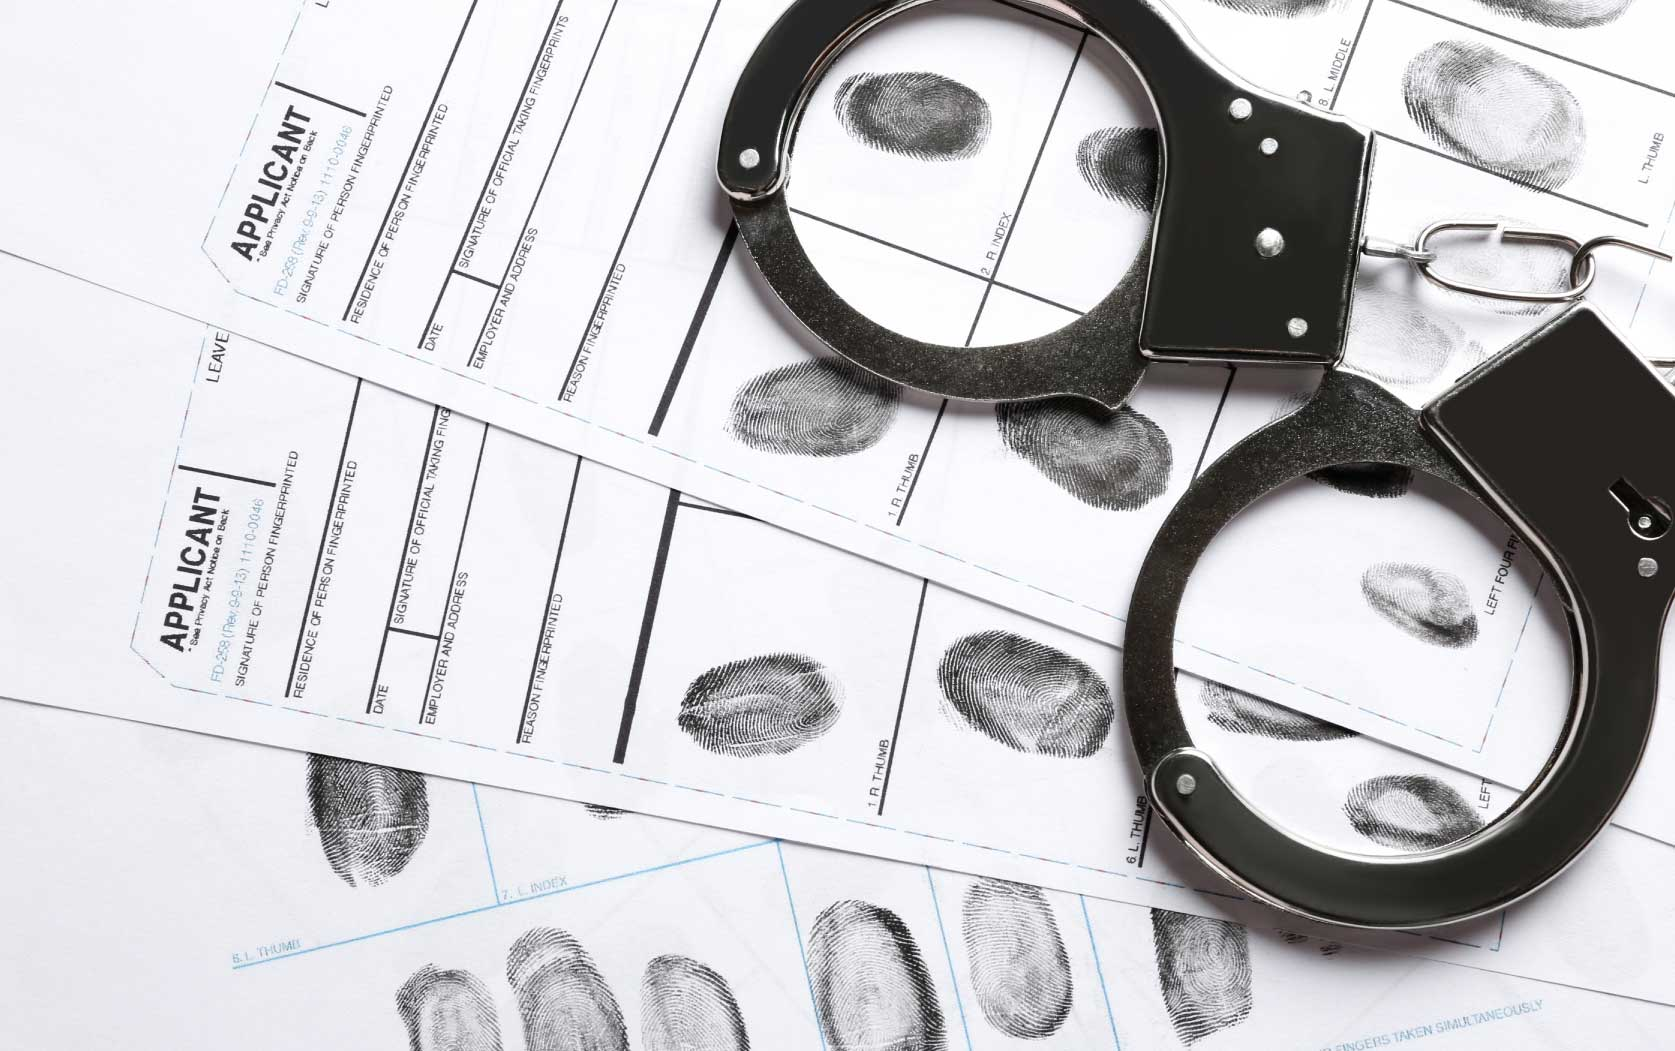 How do I remove or expunge my criminal record in South Africa?